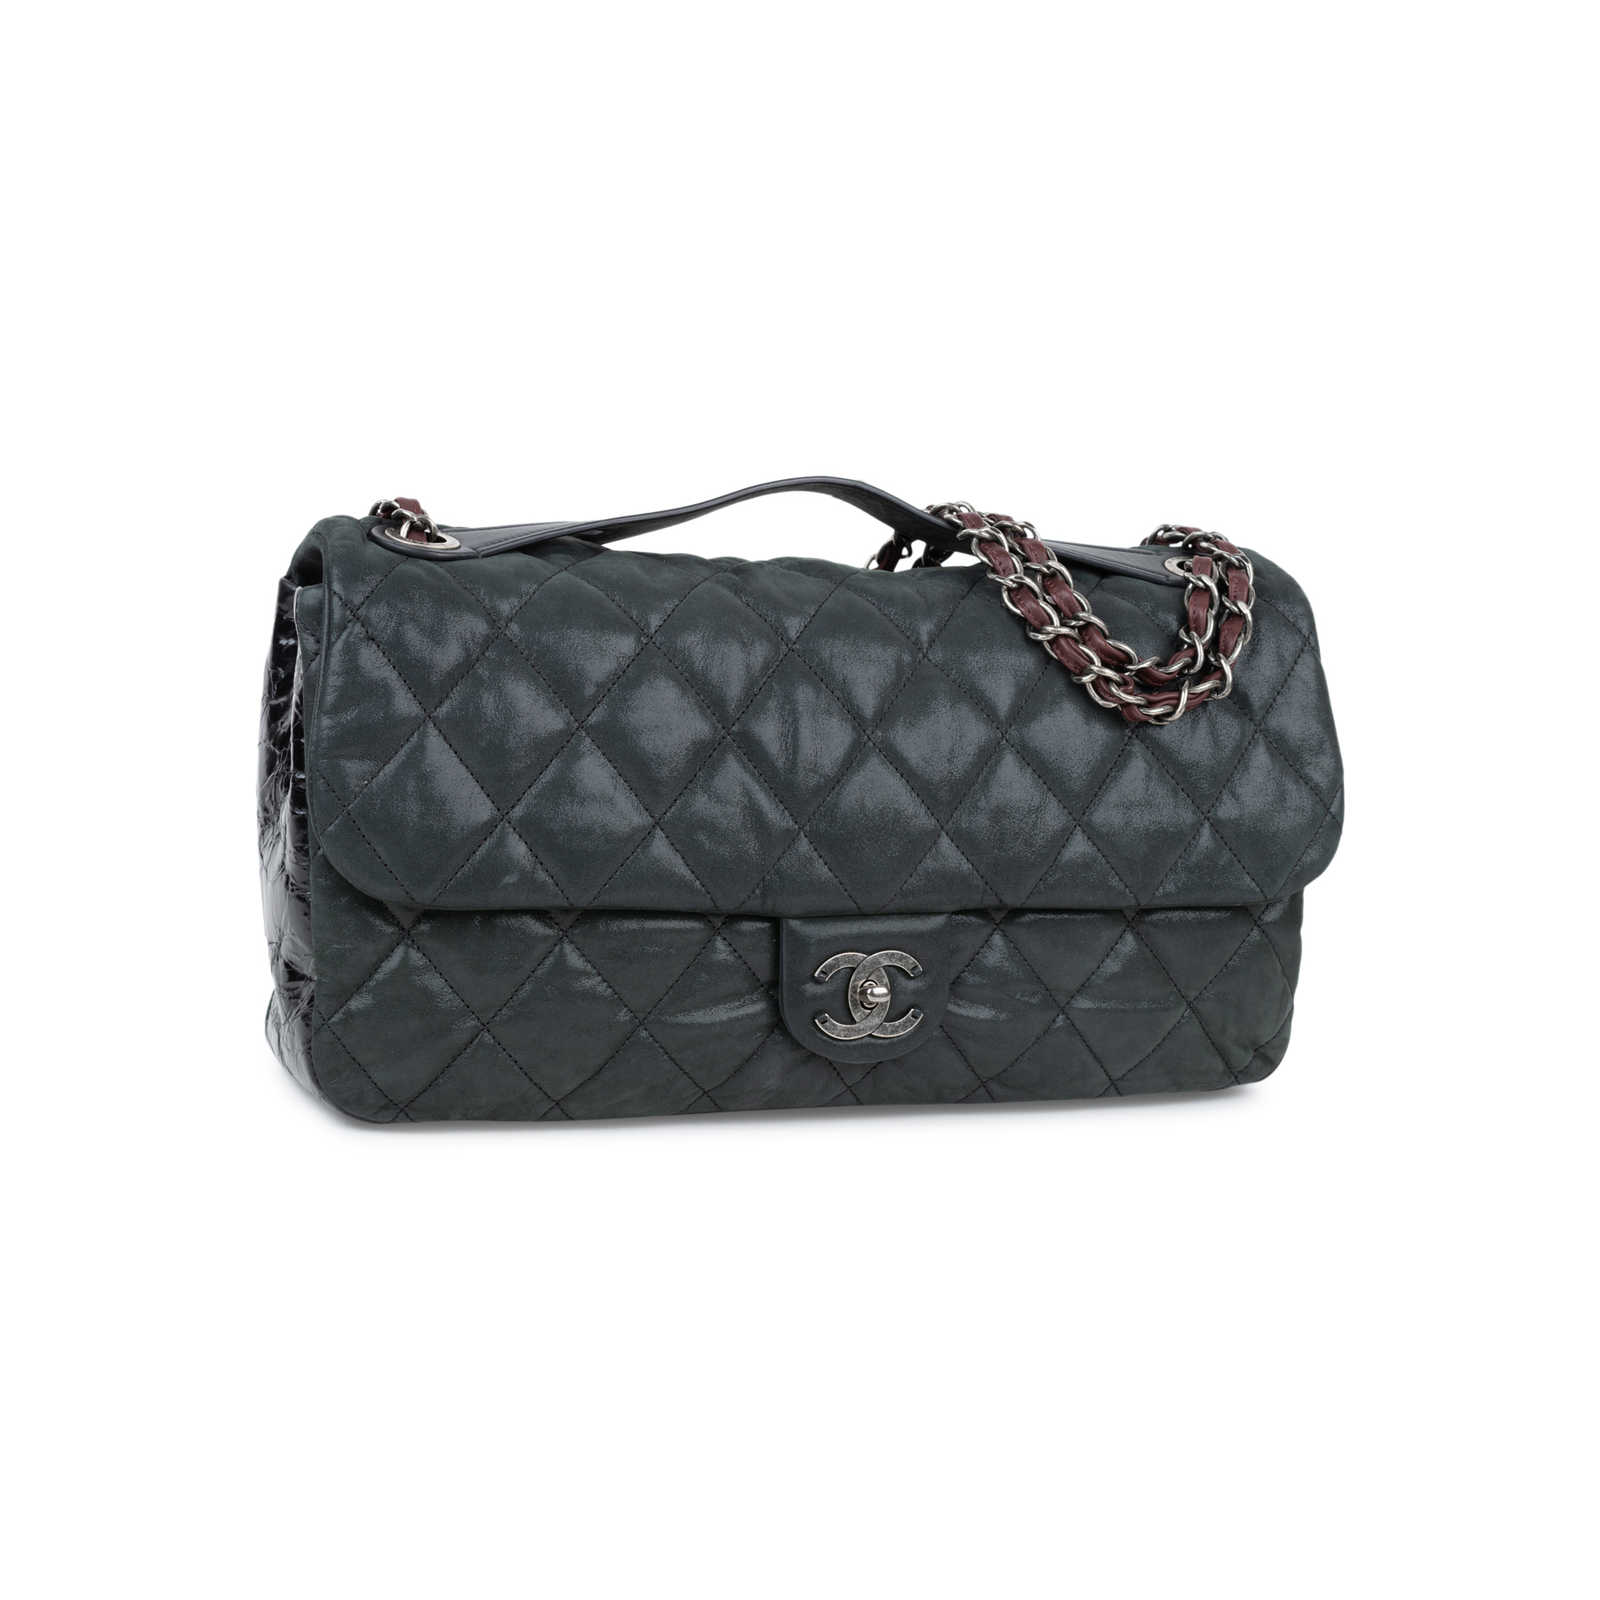 93dbaa25bfba71 ... Authentic Second Hand Chanel In The Mix Jumbo Flap Bag (PSS-556-00006  ...